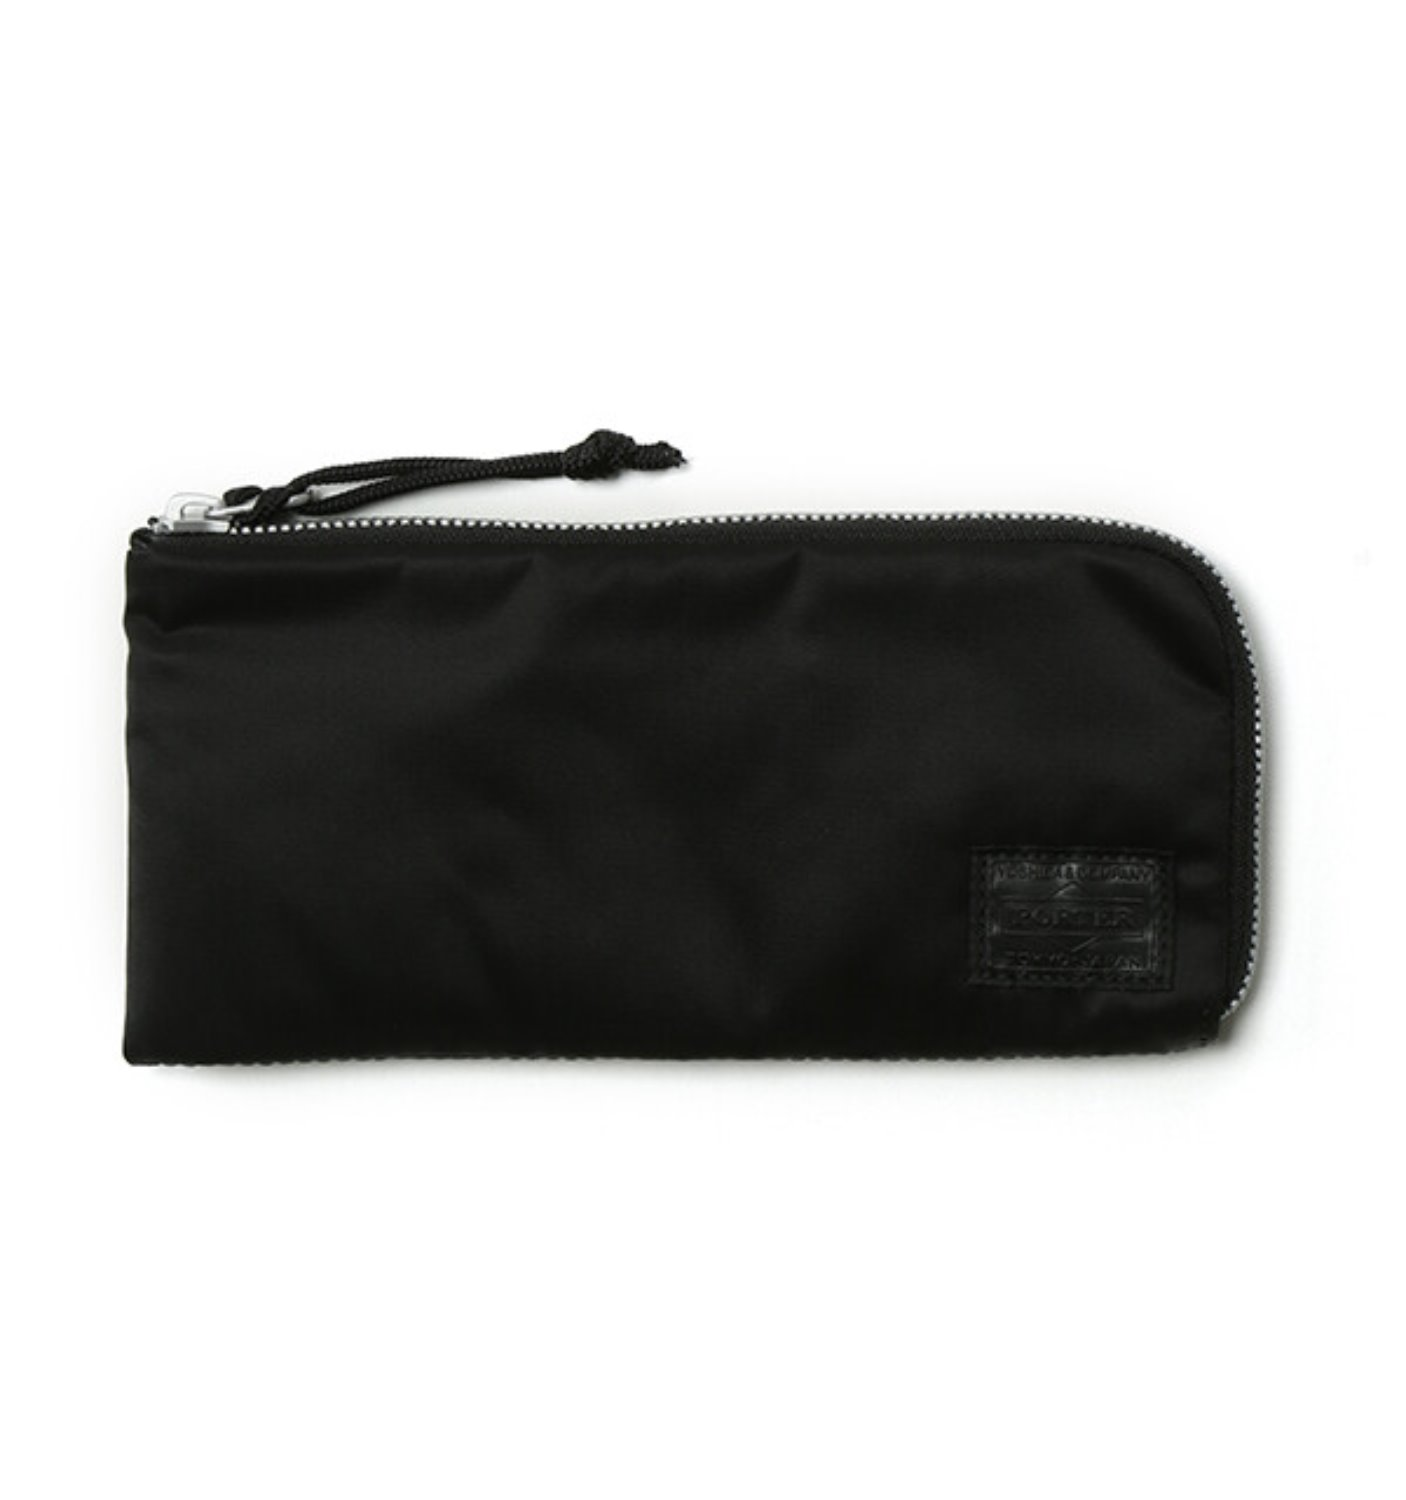 BAL/PORTER® FLGHT NYLON THIN WALLET(L) BLACK